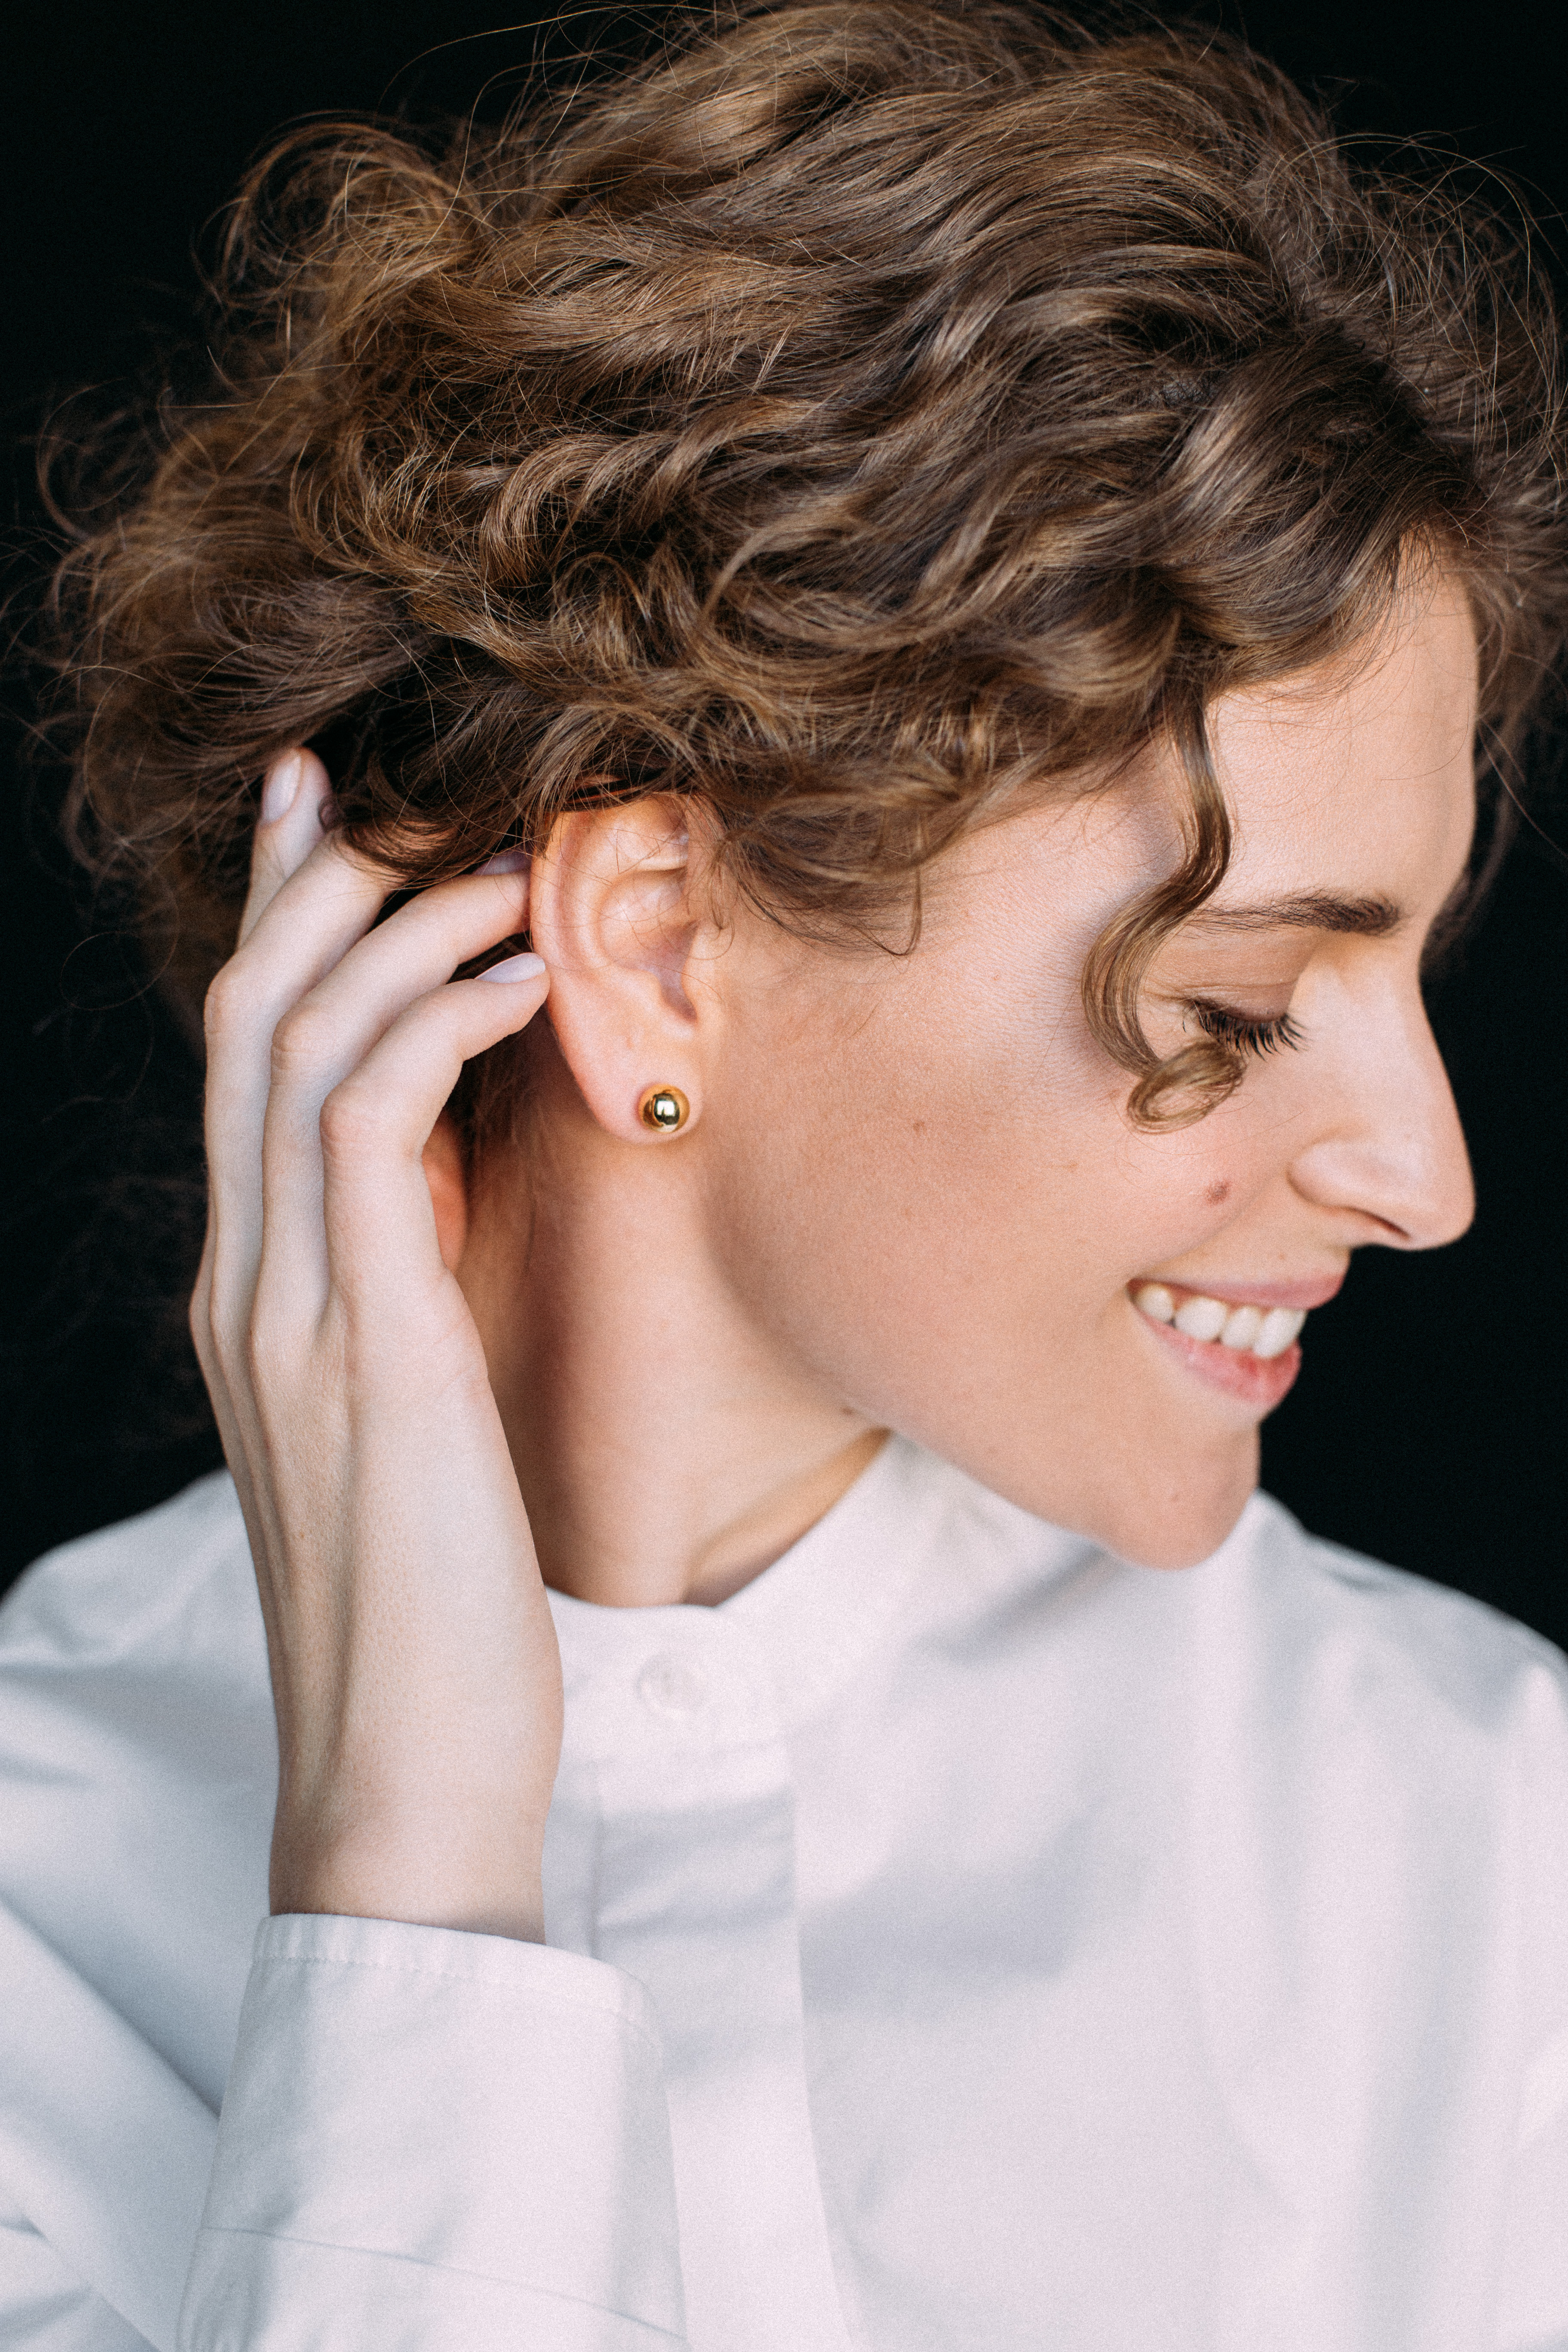 Middle Orb Earrings - Yellow Gold by Guzema Fine Jewellery on curated-crowd.com